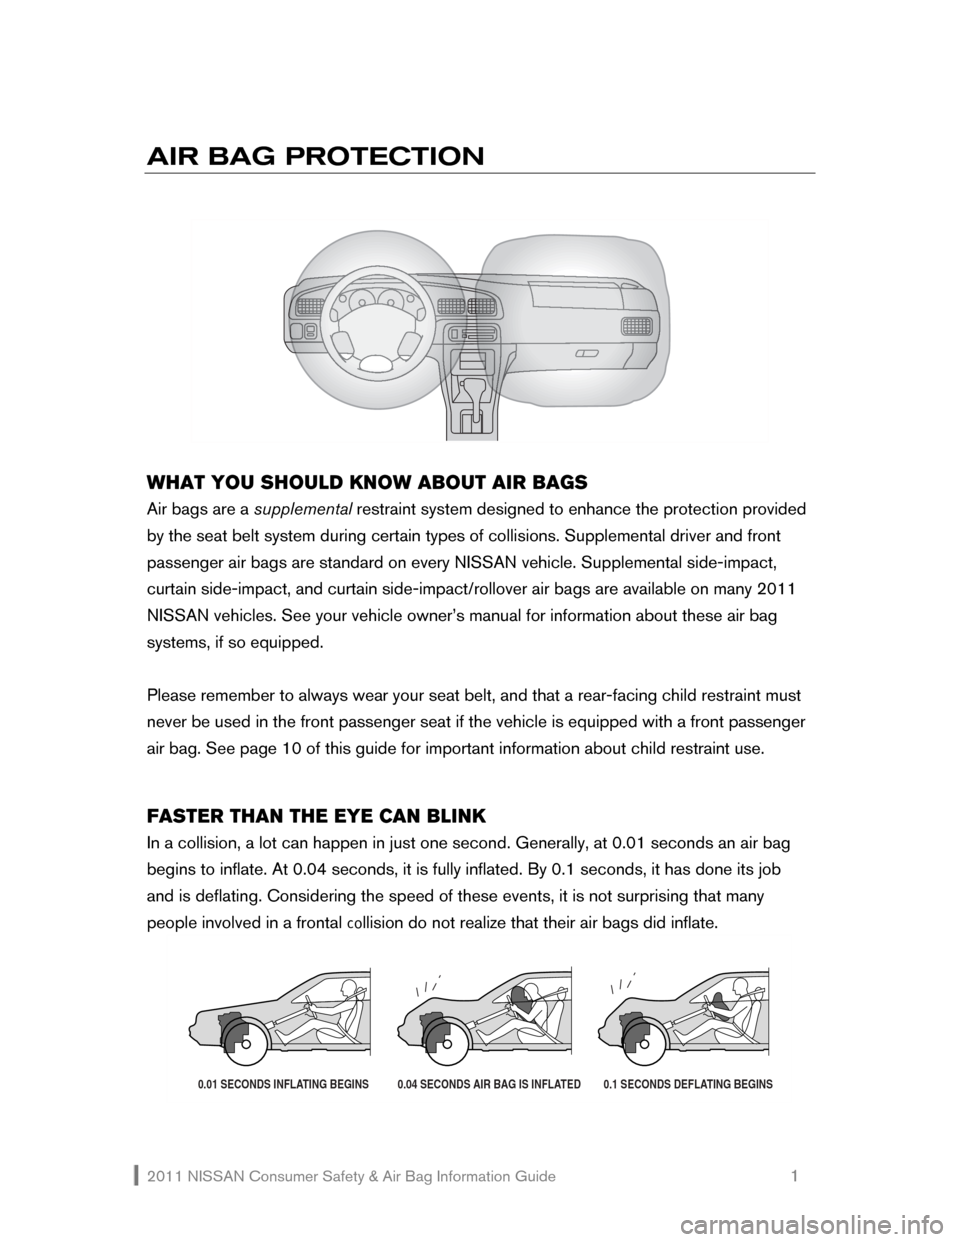 NISSAN ROGUE 2011 1.G Consumer Safety Air Bag Information Guide, Page 2